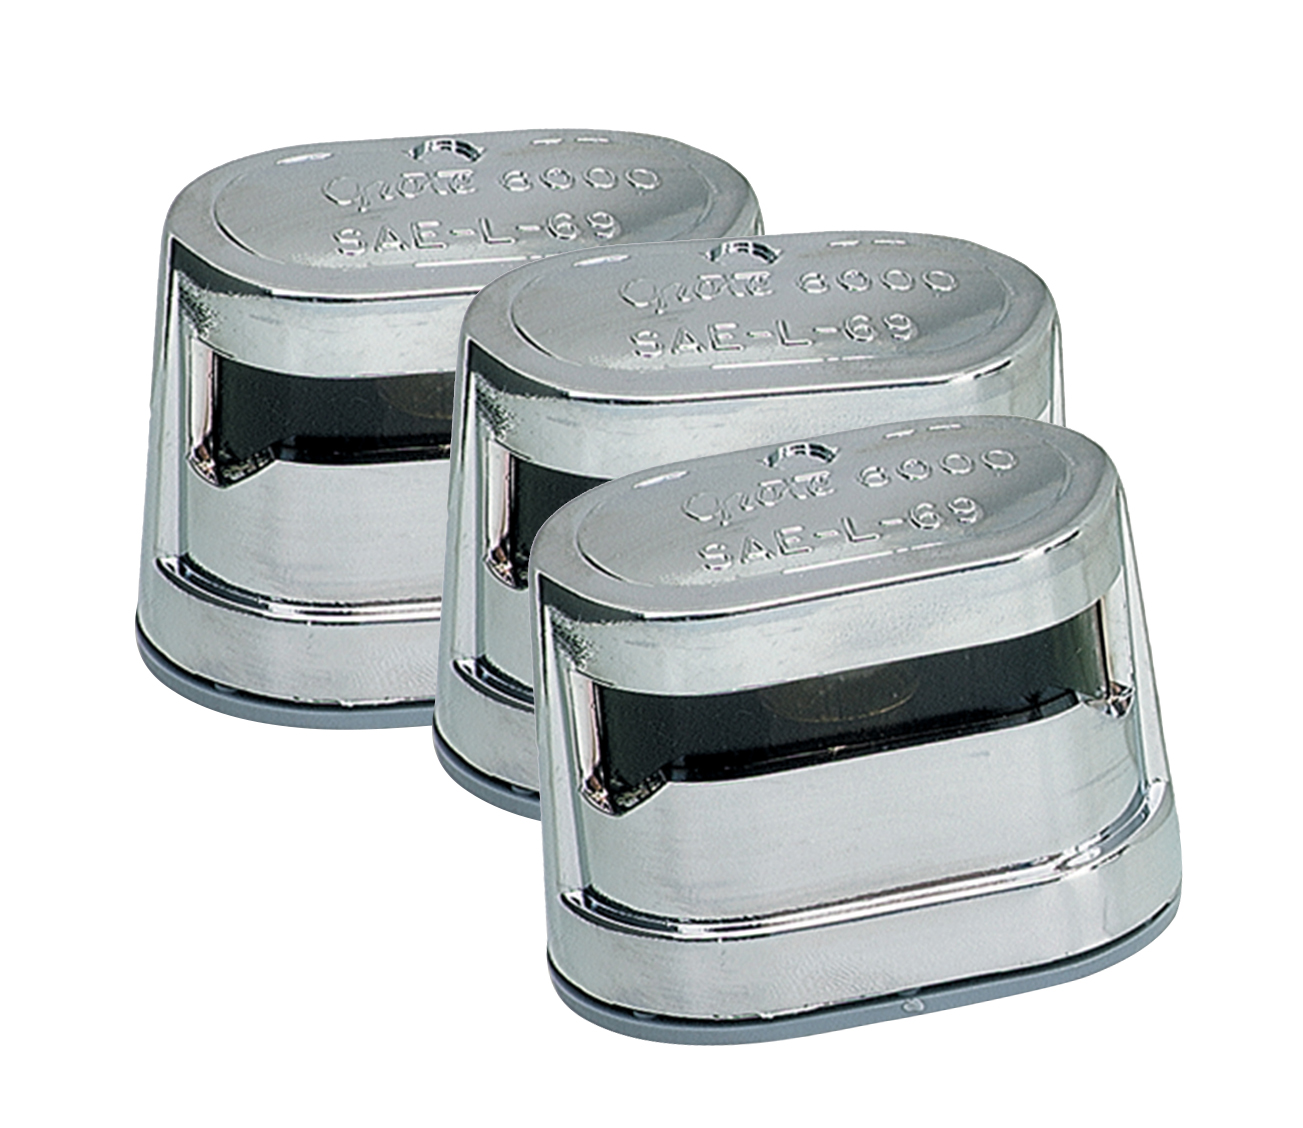 60011-3 – Resealable License Light, Triple Chrome, Bulk Pack